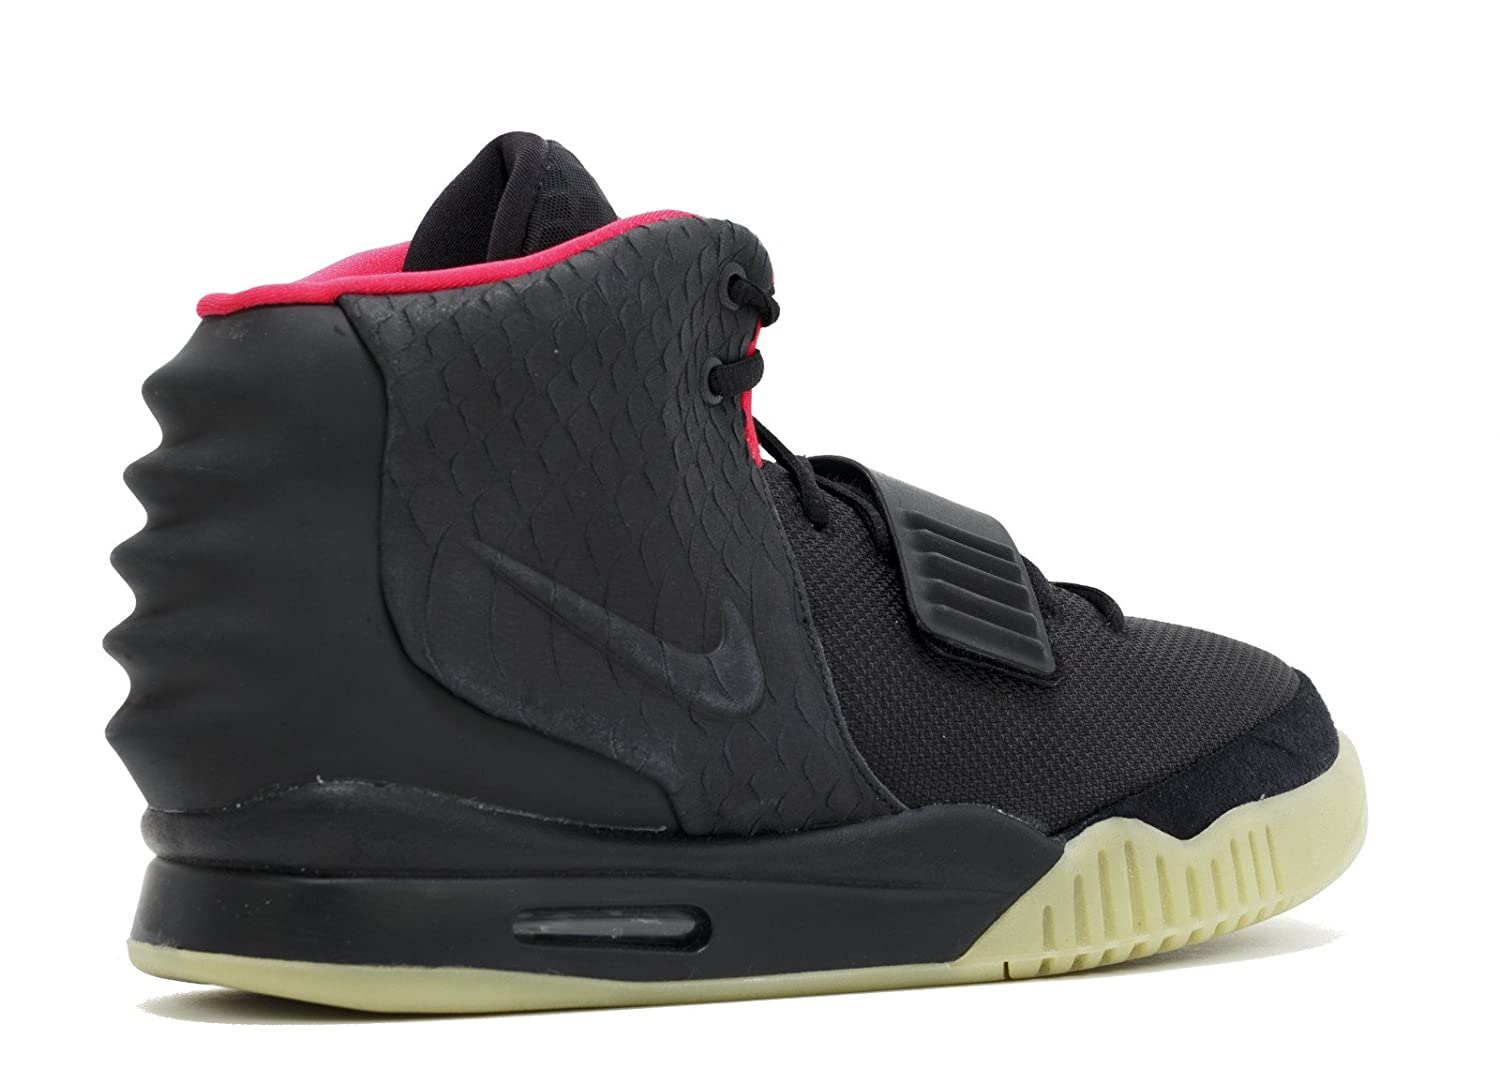 finest selection 1b169 14dad Amazon.com   NIKE Air Yeezy 2 NRG Black Solar Red Style   508214-006    Basketball